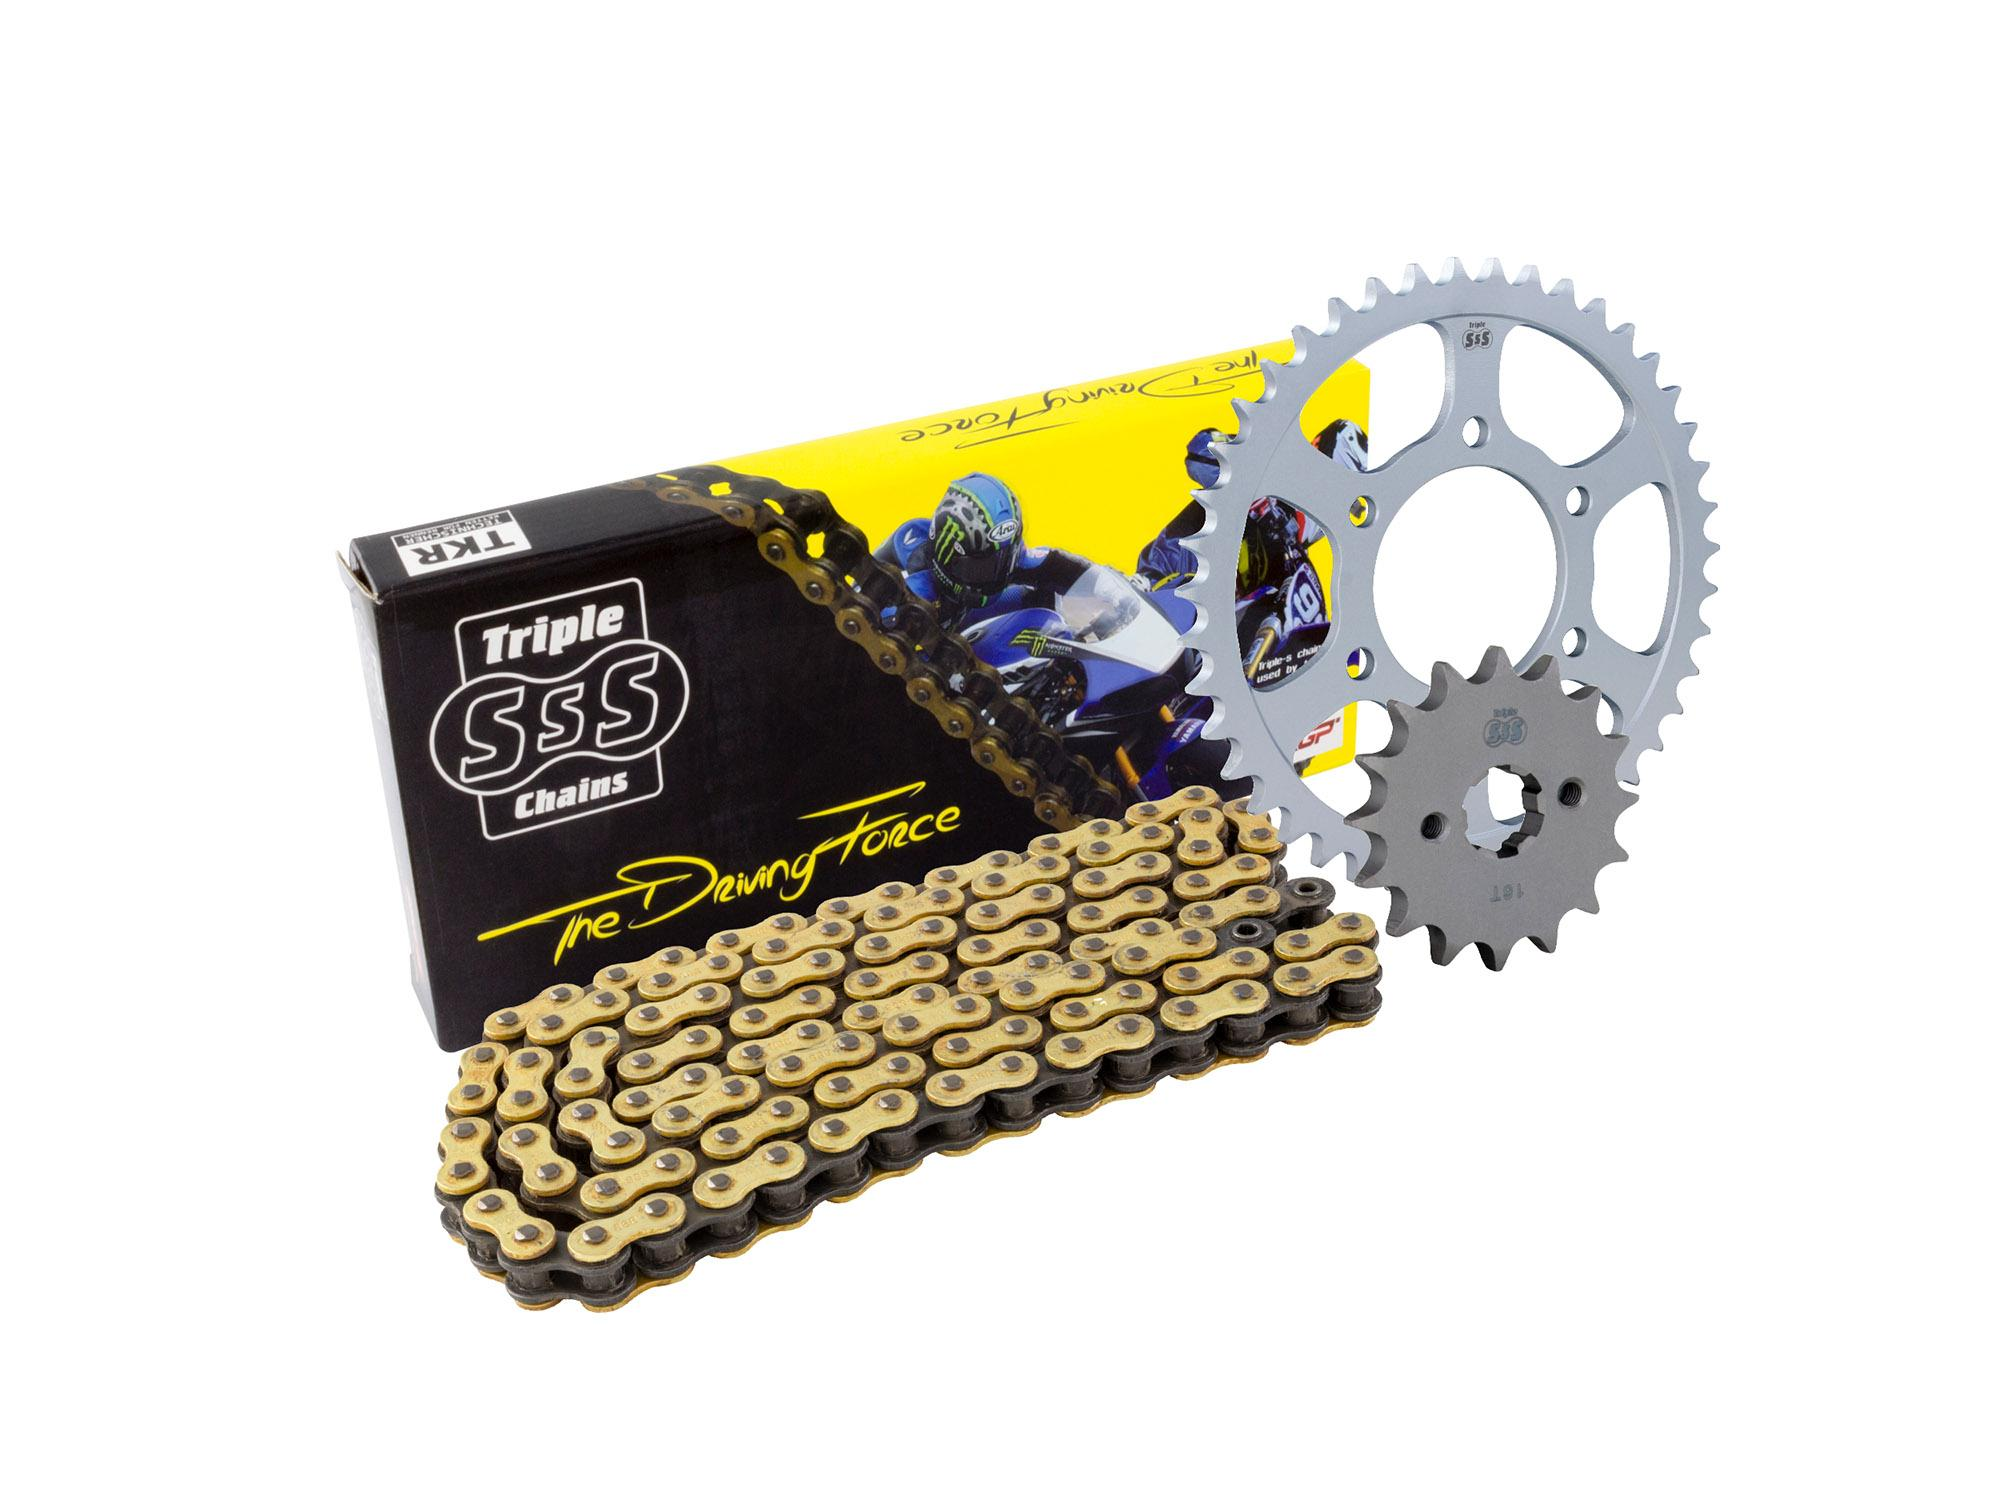 Triumph 955 Sprint RS 00-03 Chain & Sprocket Kit: 19T Front, 43T Rear, HD O-Ring Gold Chain 530H 108 Link